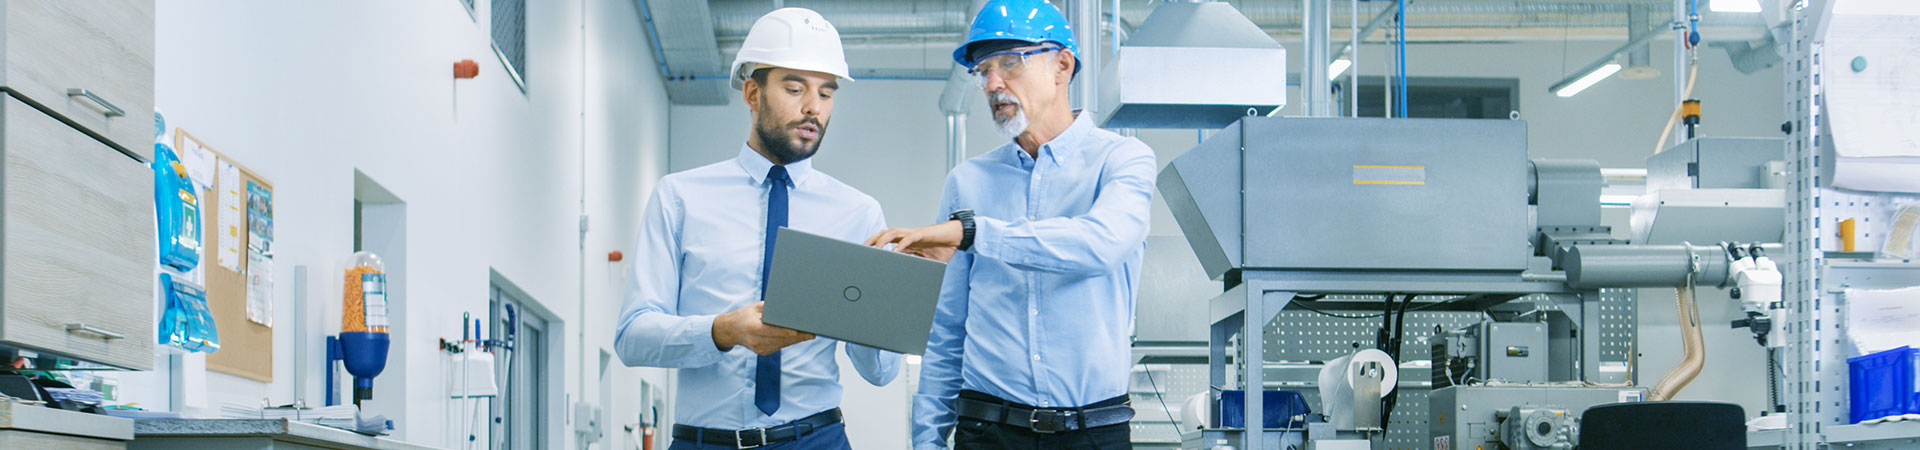 Two men on factory floor looking at laptop